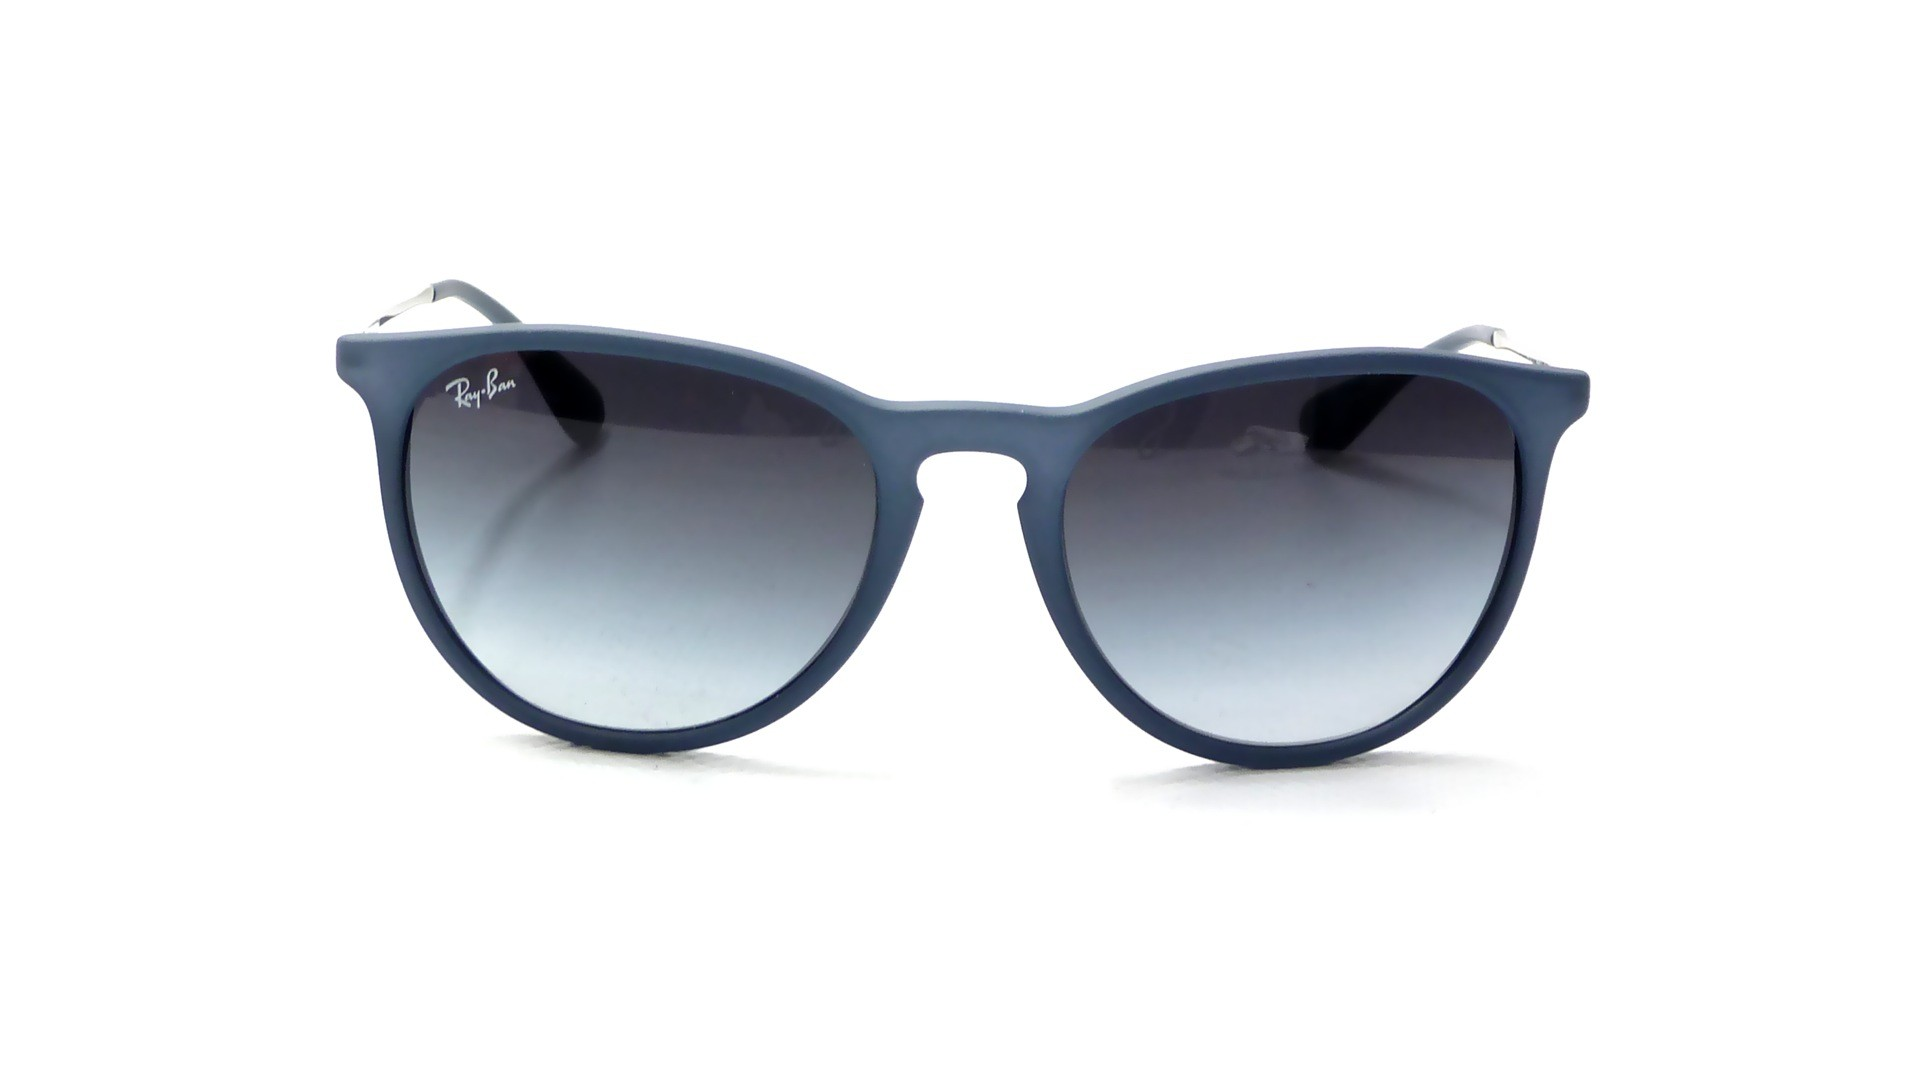 666945384 Sunglasses Ray-Ban Erika Blue RB4171 6002/8G 54-20 Medium Gradient